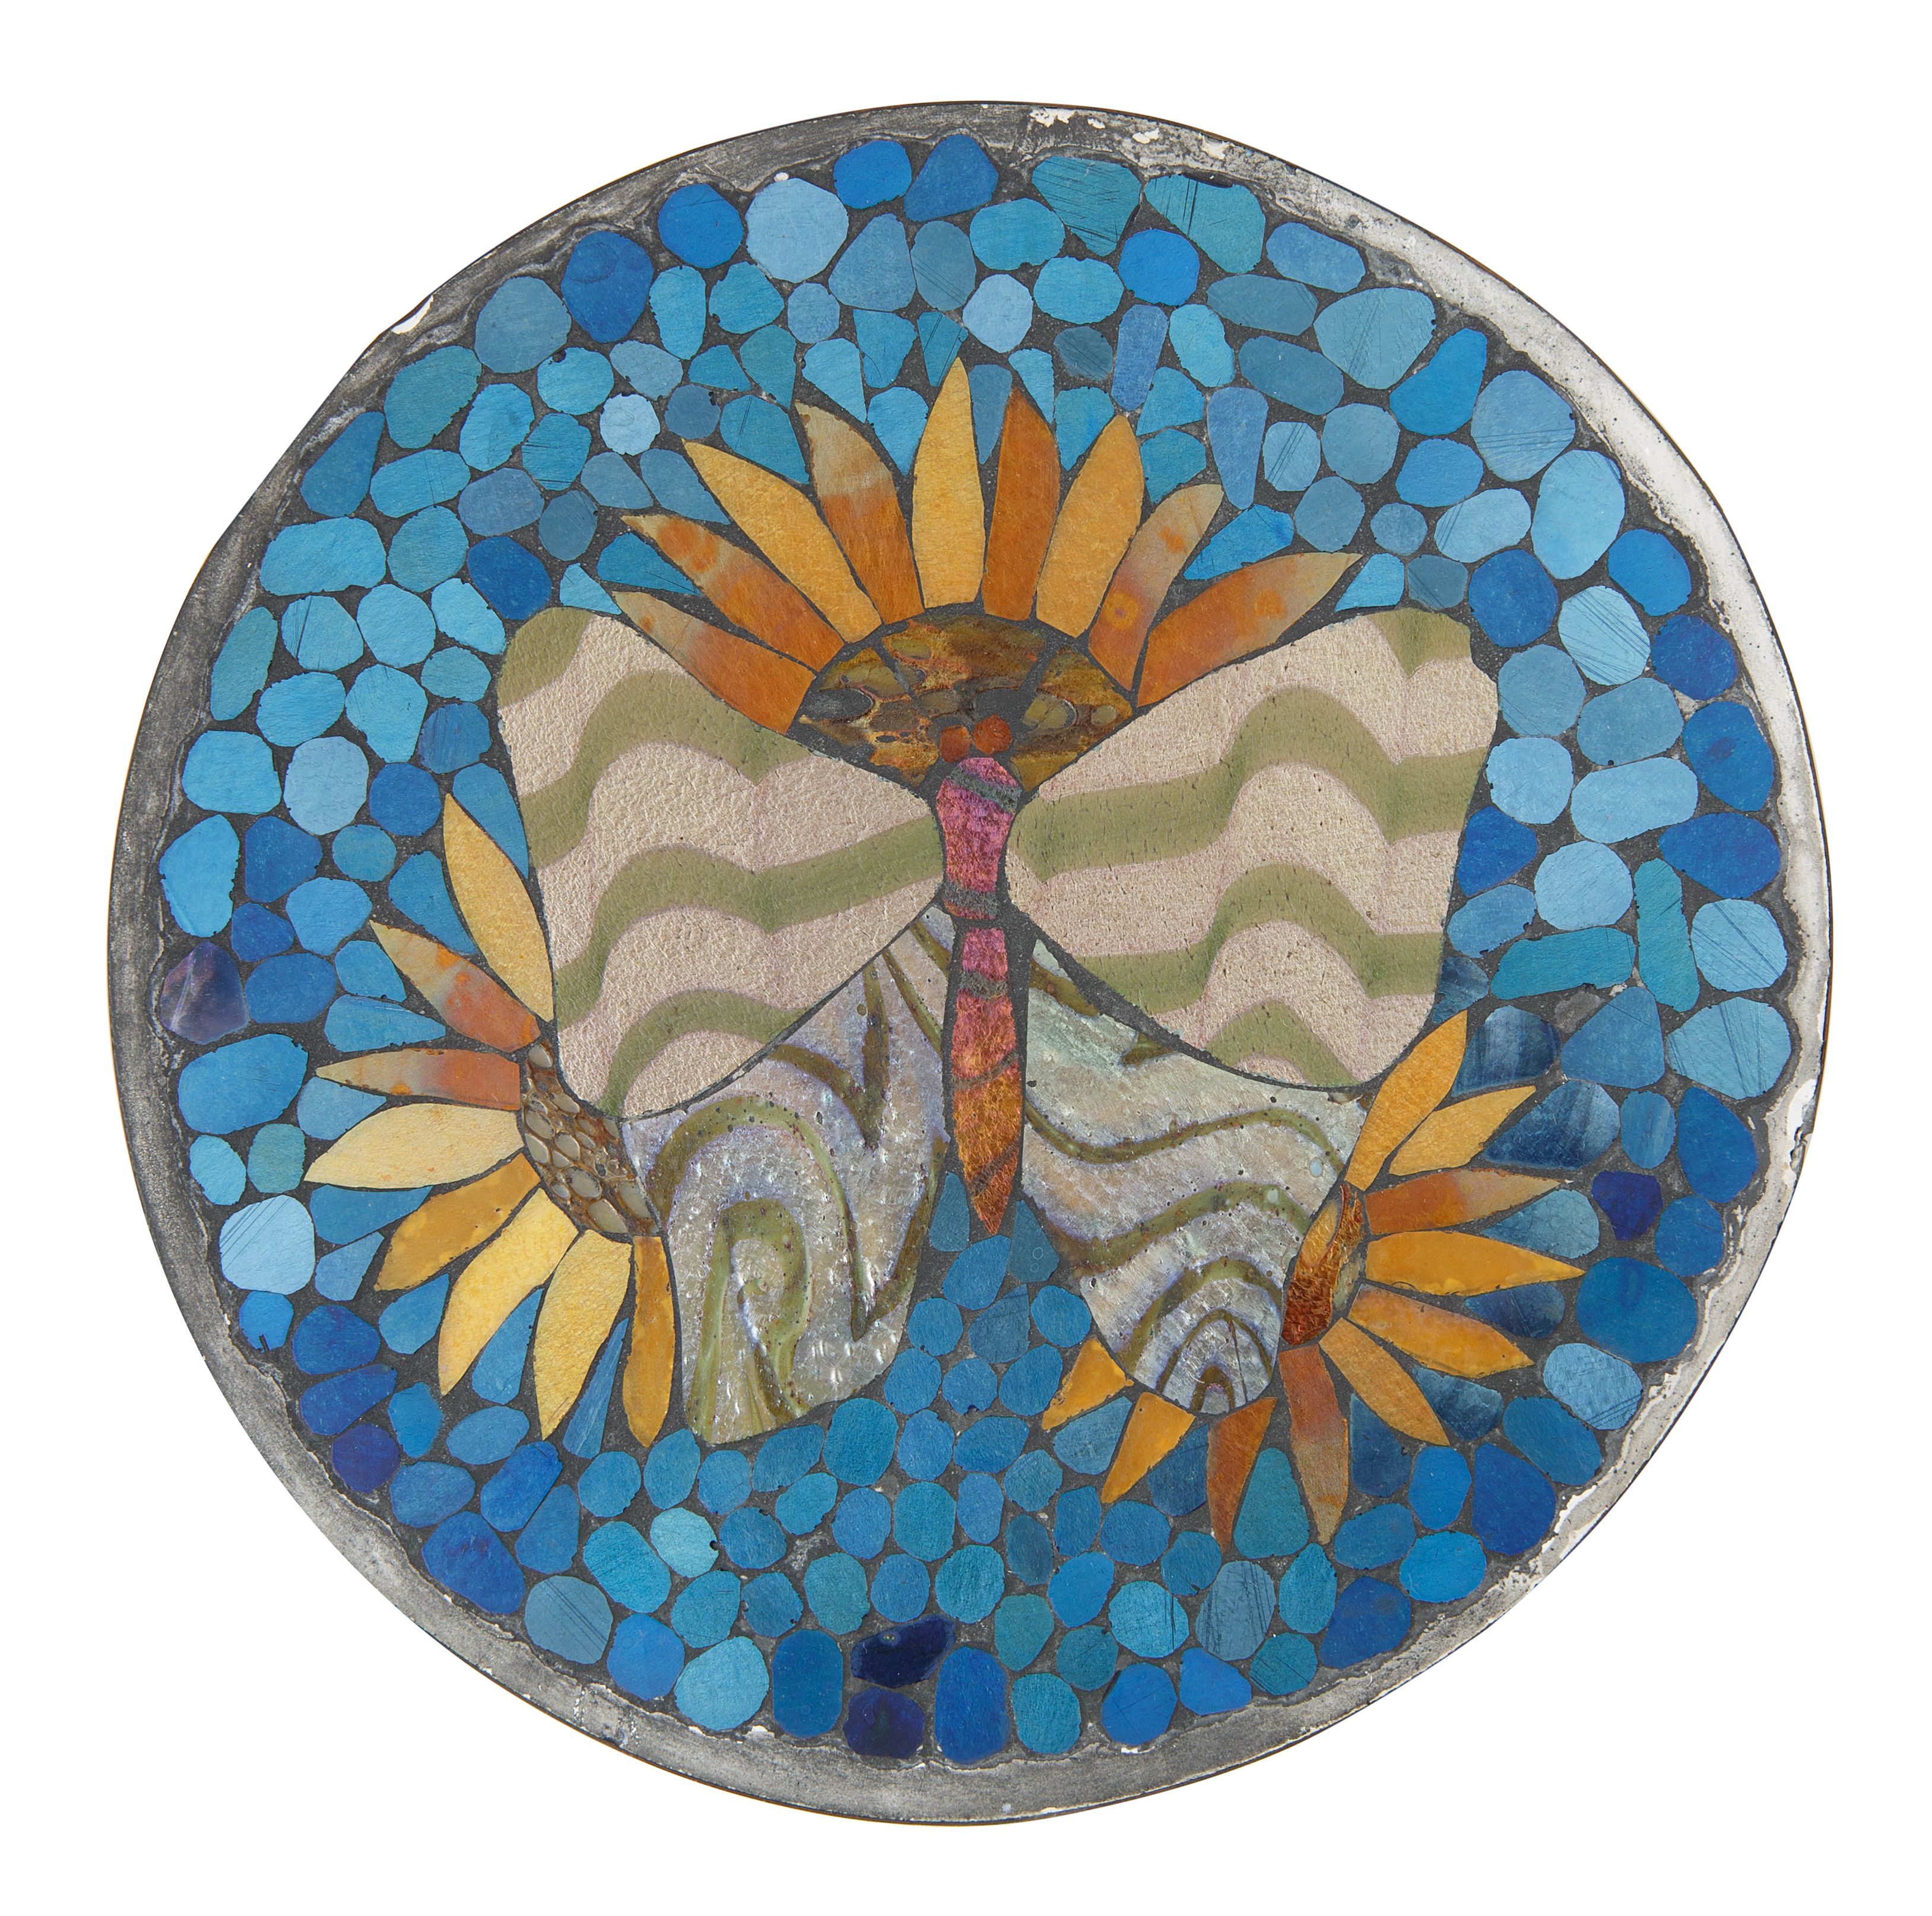 20TH CENTURY 'SUNFLOWER AND BUTTERFLY' TRIVET - Image 2 of 4